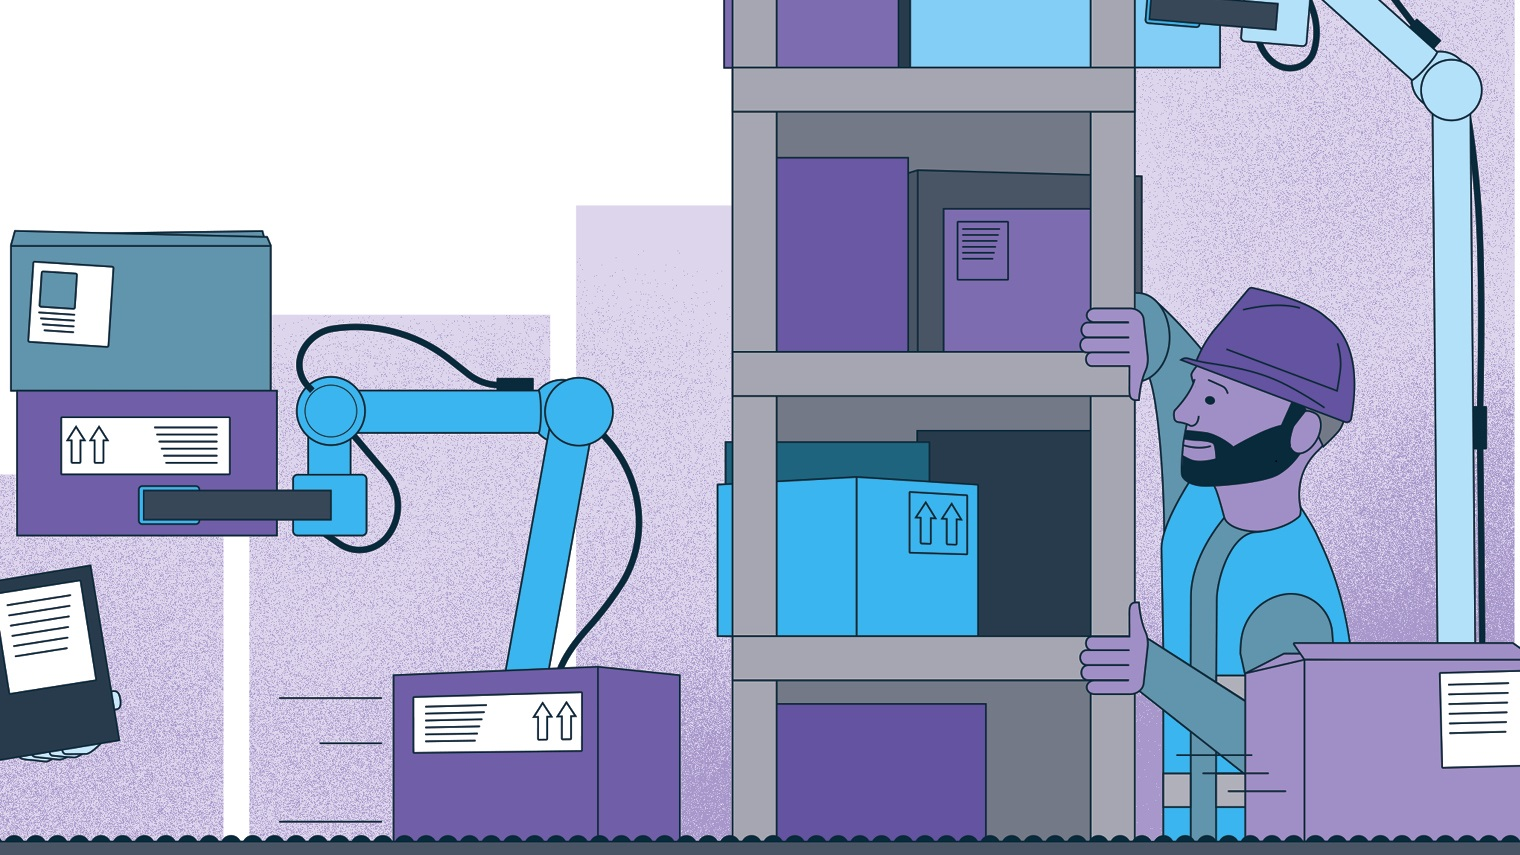 illustration of man in warehouse surrounded by robots